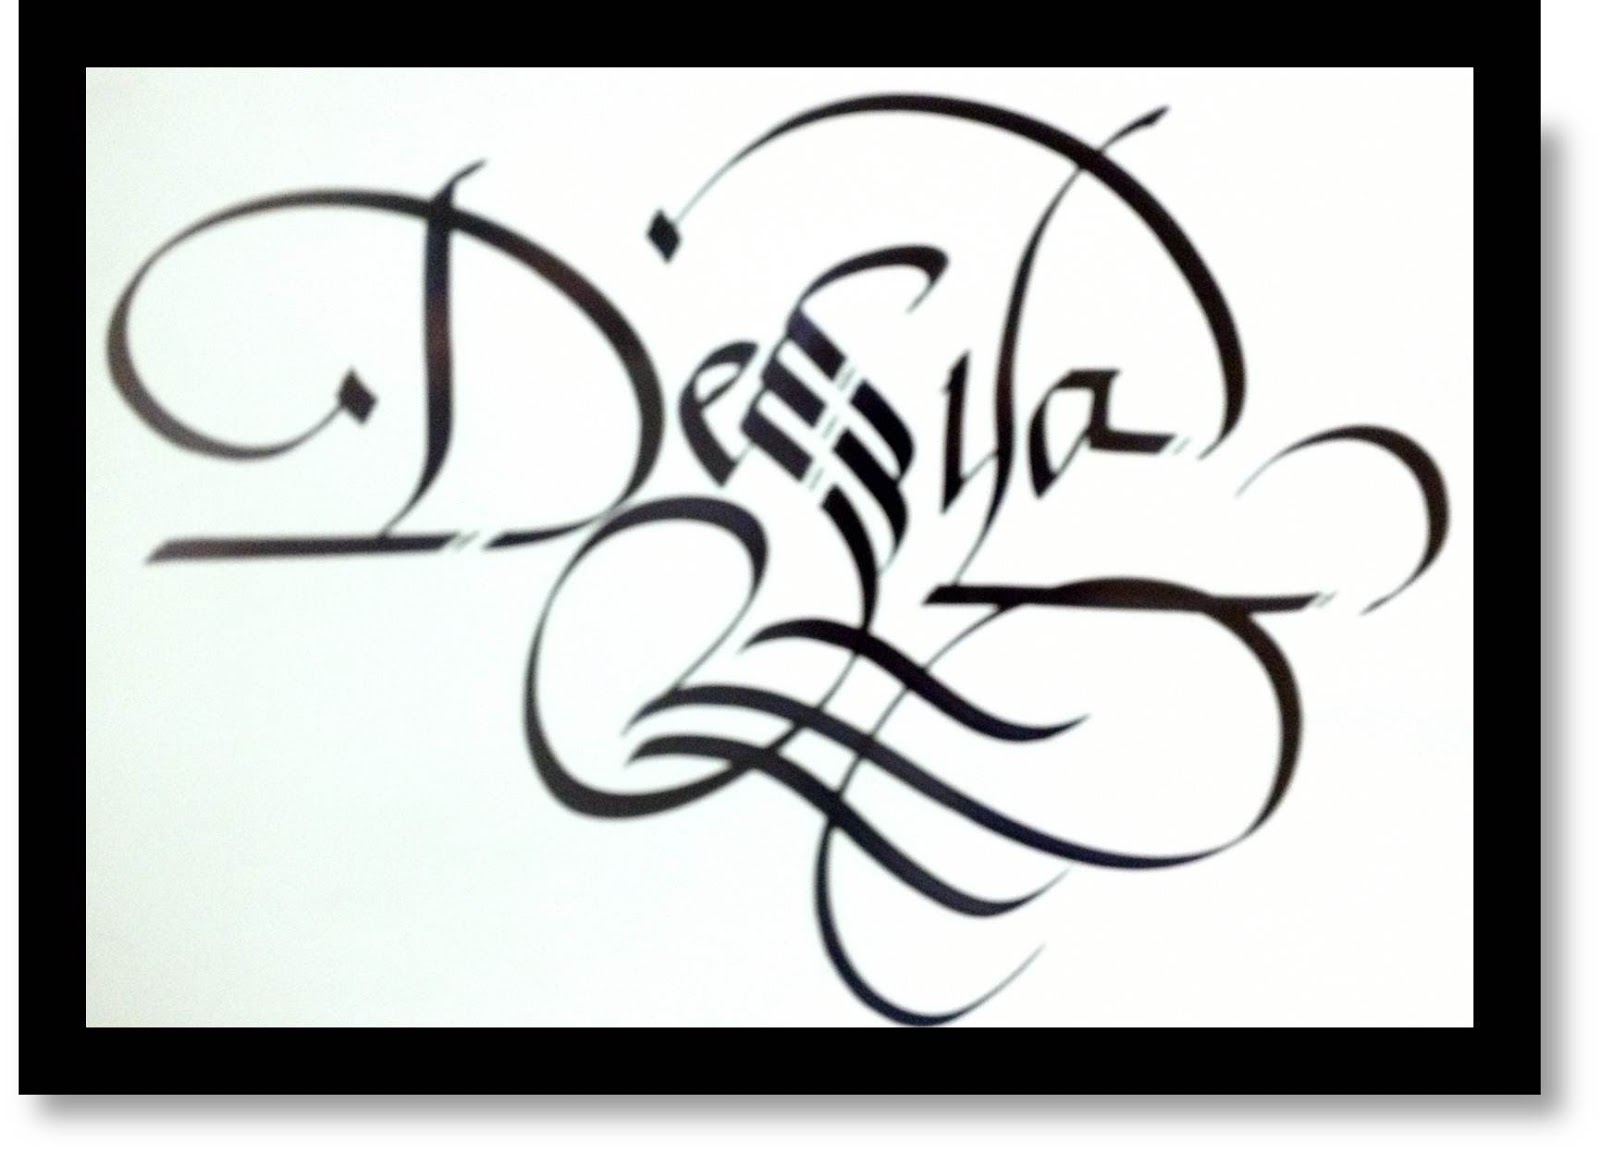 Calligraphy Art Russian Names In Calligraphy Desya